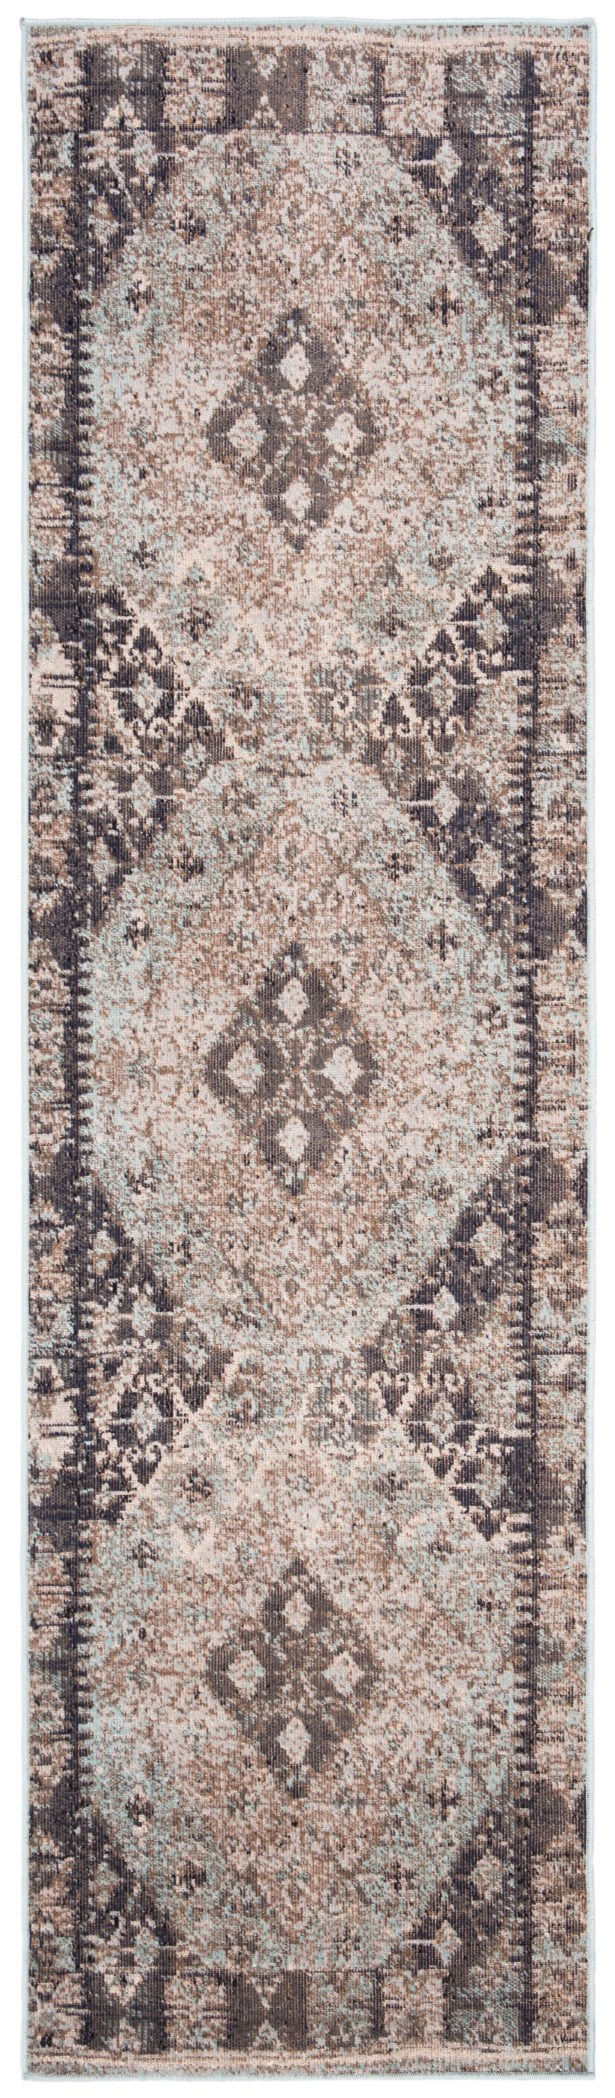 Griffeth Blue/Gray Area Rug Rug Size: Runner 2'3